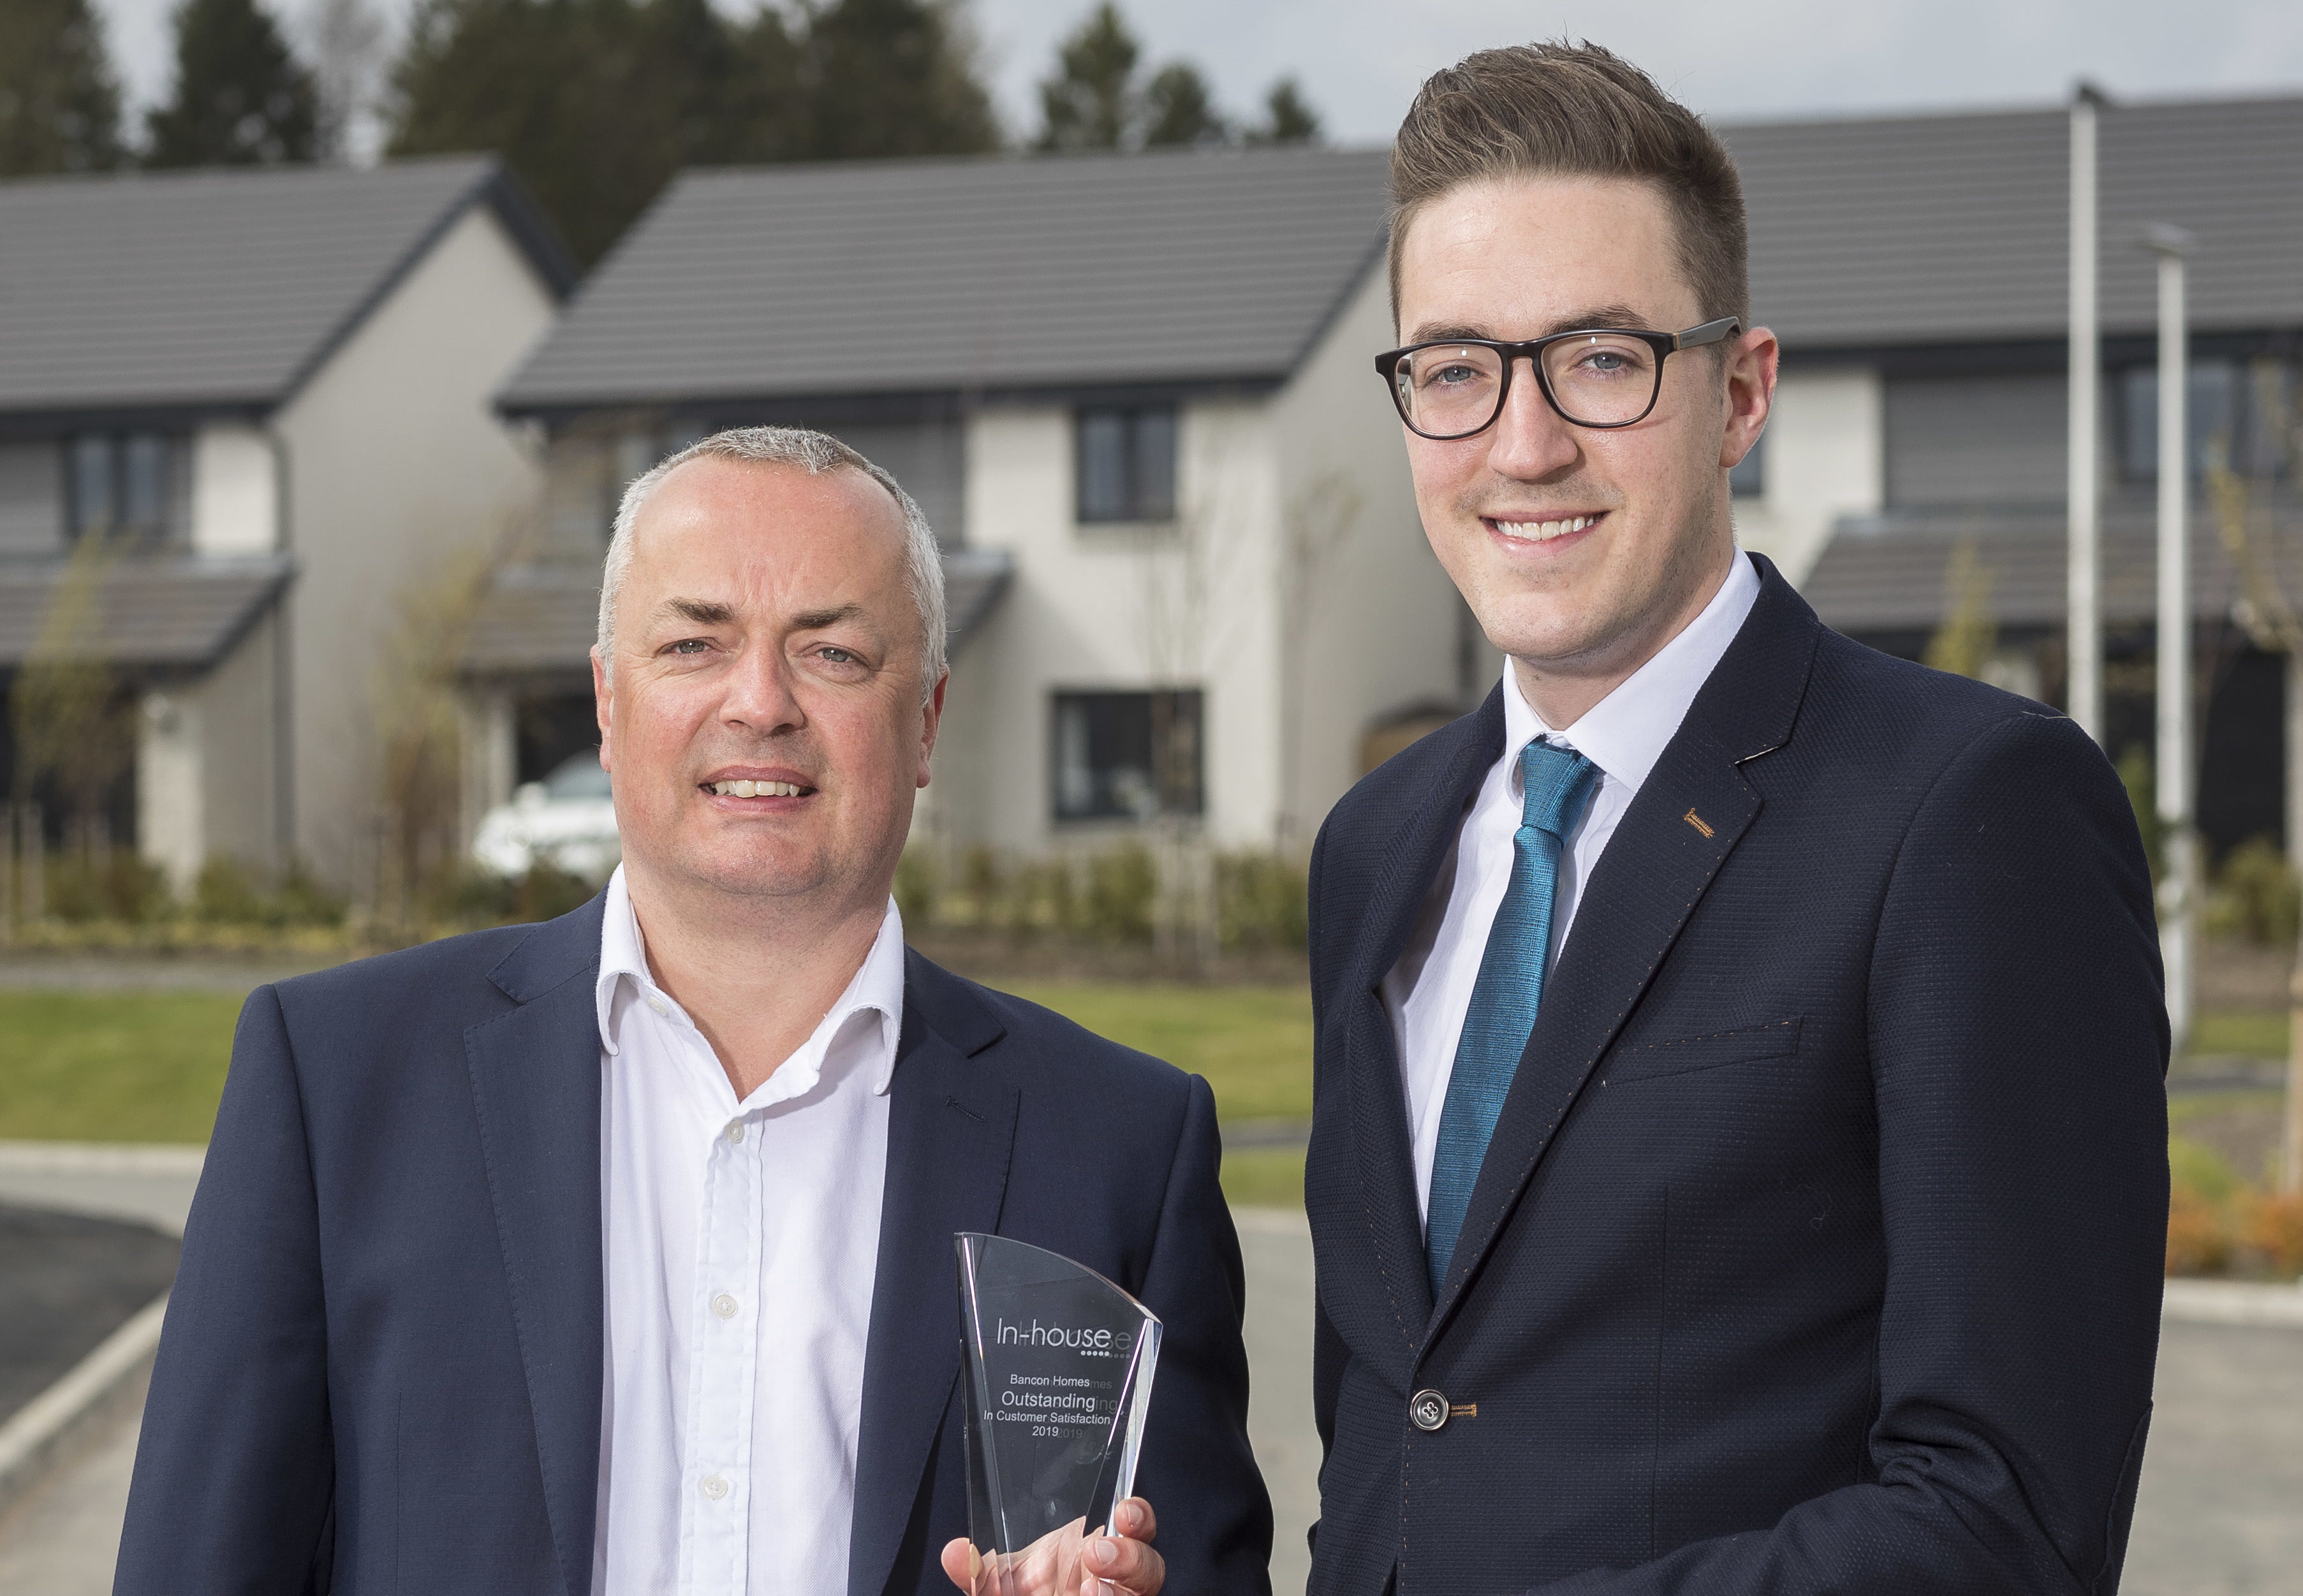 Allan Clow (left), managing director of Bancon Homes, is pictured receiving the award from Tom Weston, chief operating officer at In-House Research.